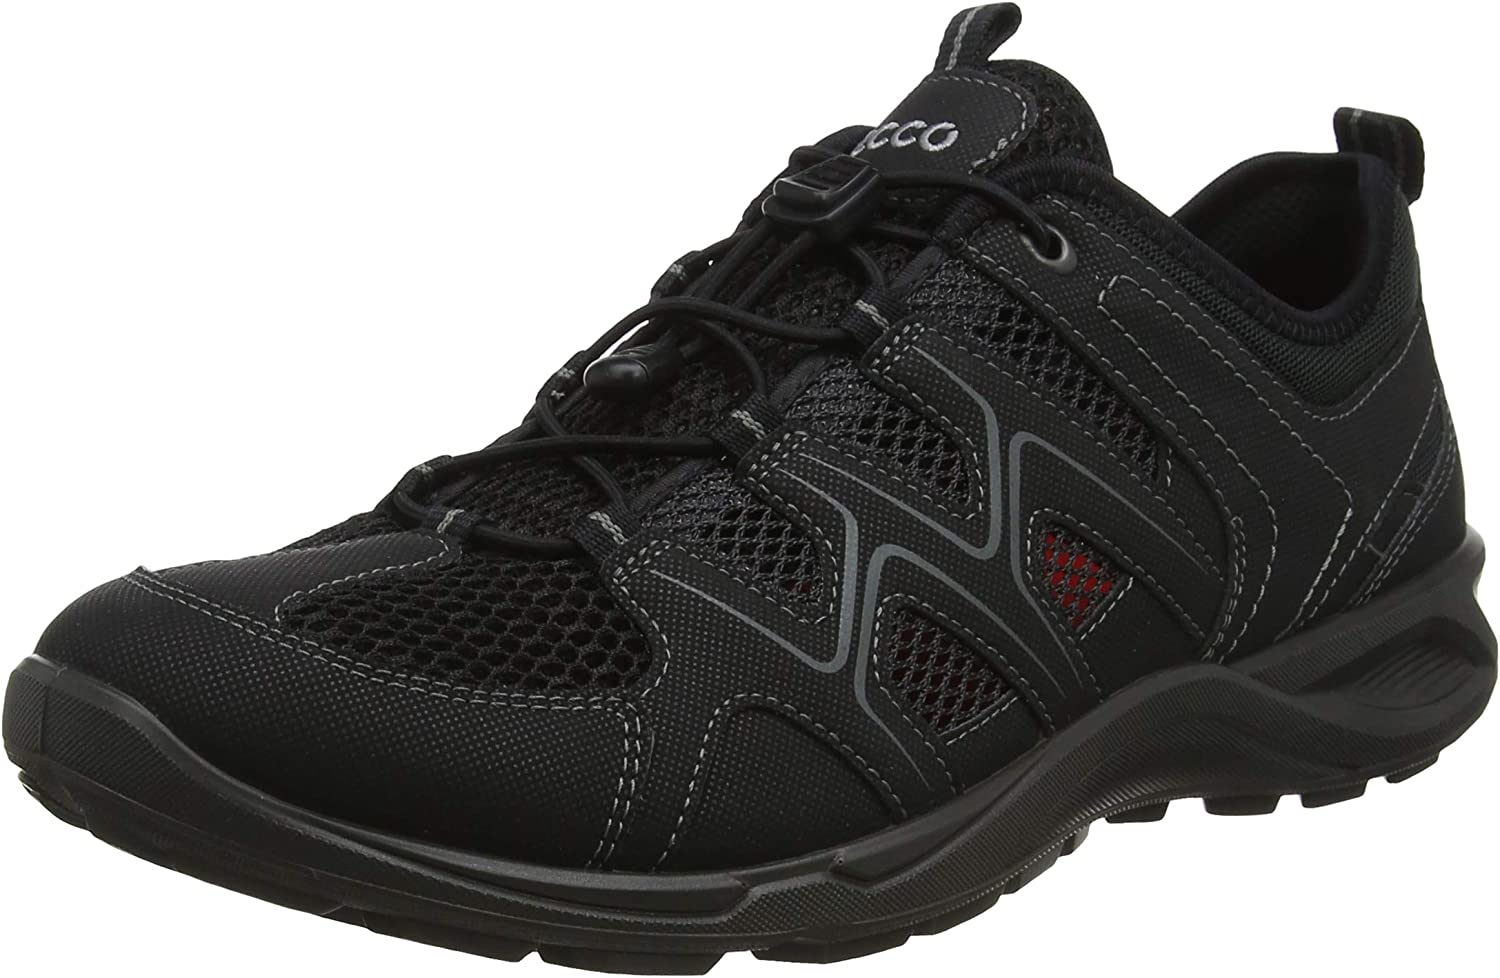 ECCO Men s Terracruise Hiking Shoe